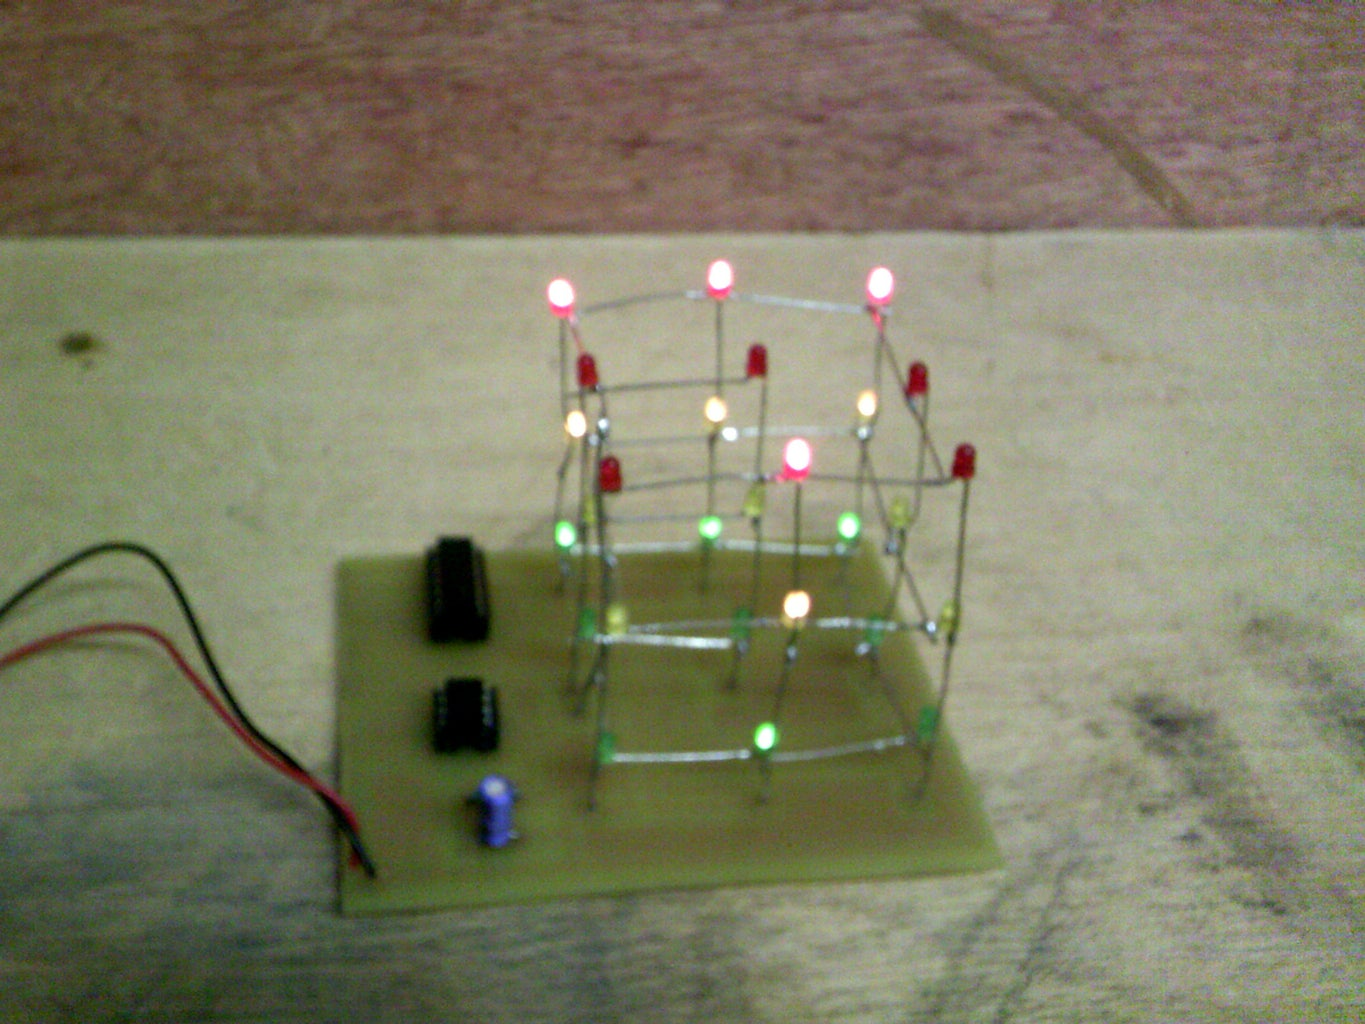 A 3x3x3 Led Cube for the Absolute Beginner Using a 555 Timer and 4020 IC - No Programming